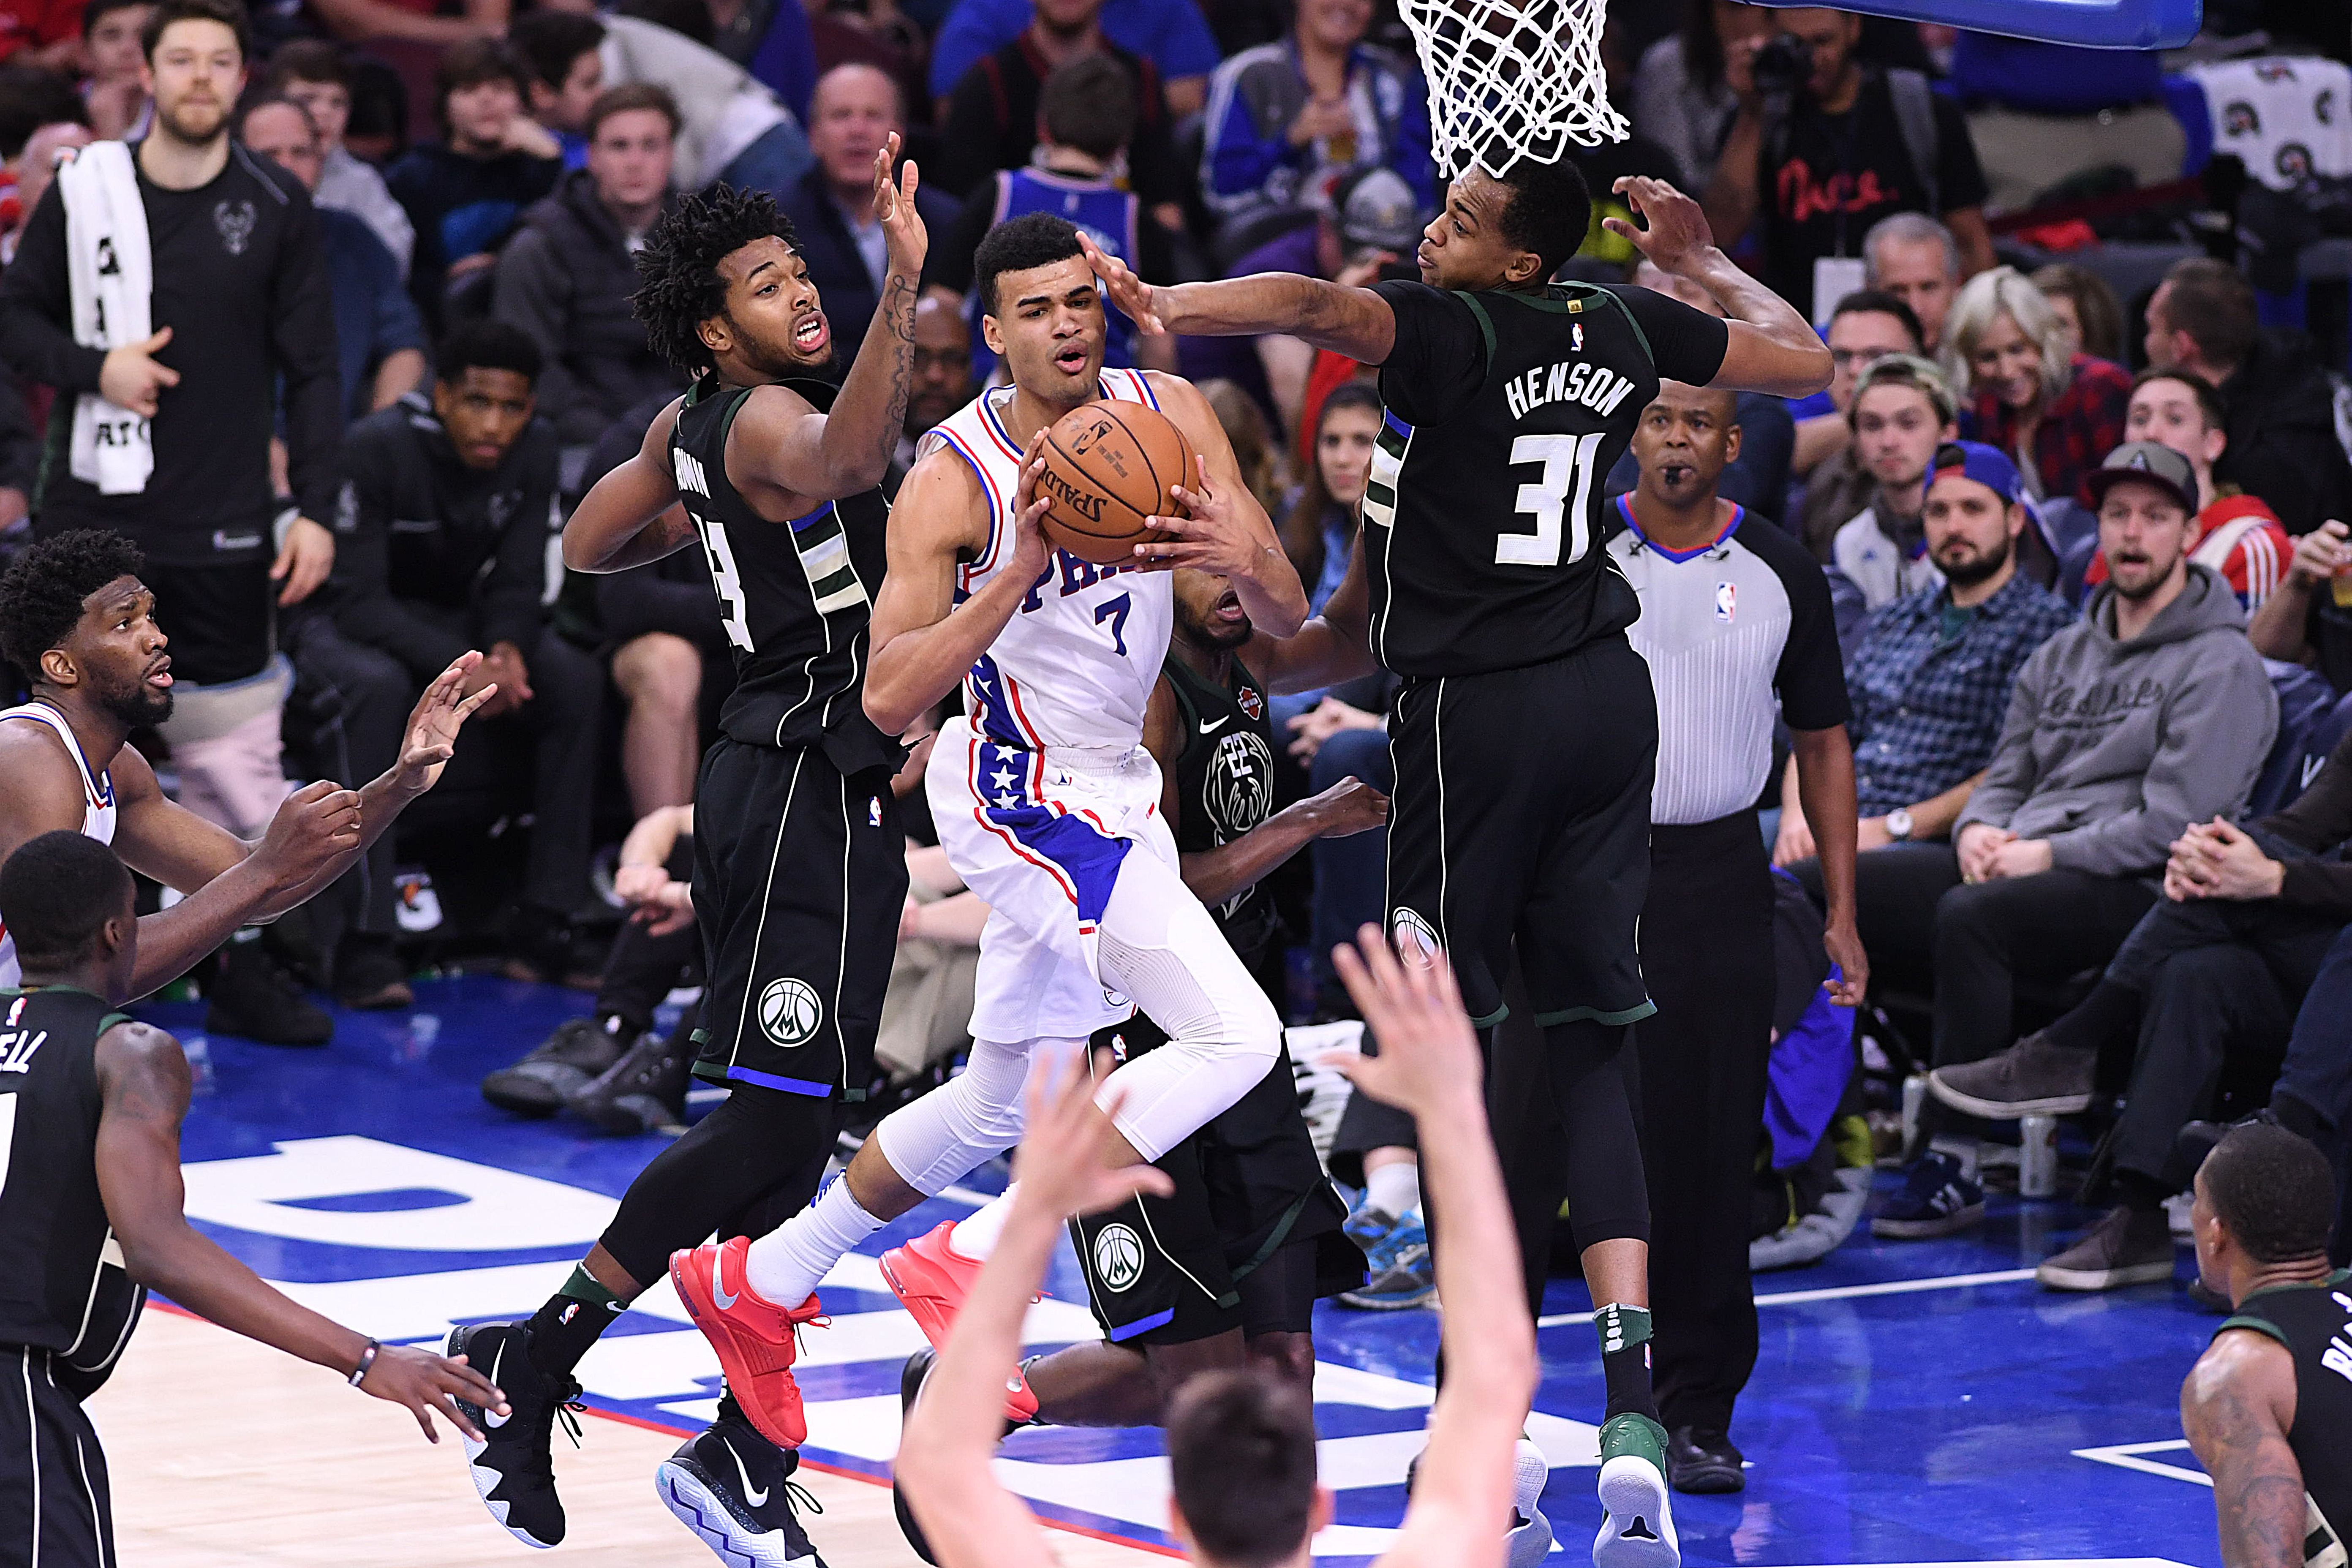 https://behindthebuckpass.com/wp-content/uploads/getty-images/2018/01/908542936-milwaukee-bucks-v-philadelphia-76ers.jpg.jpg